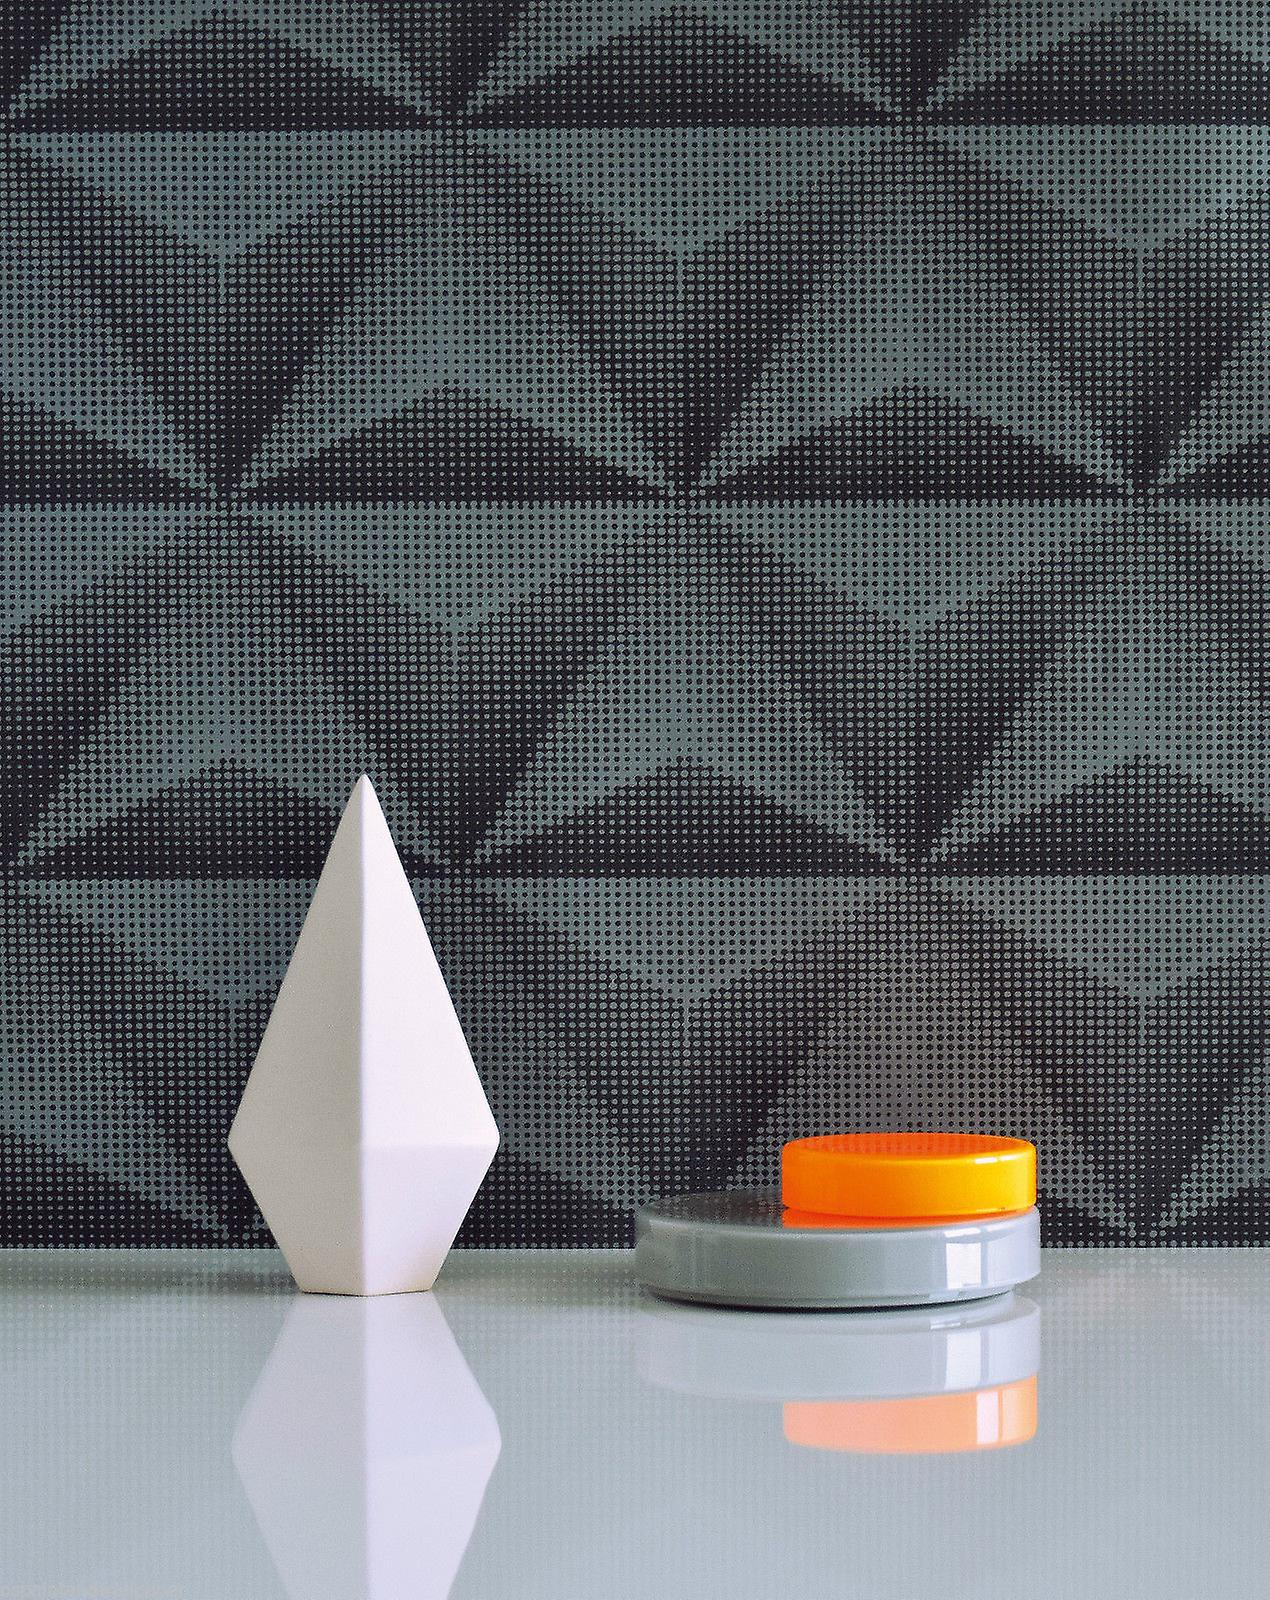 3D Effect Wallpaper Geometric Unplugged Dotted Textured Black Grey Galerie